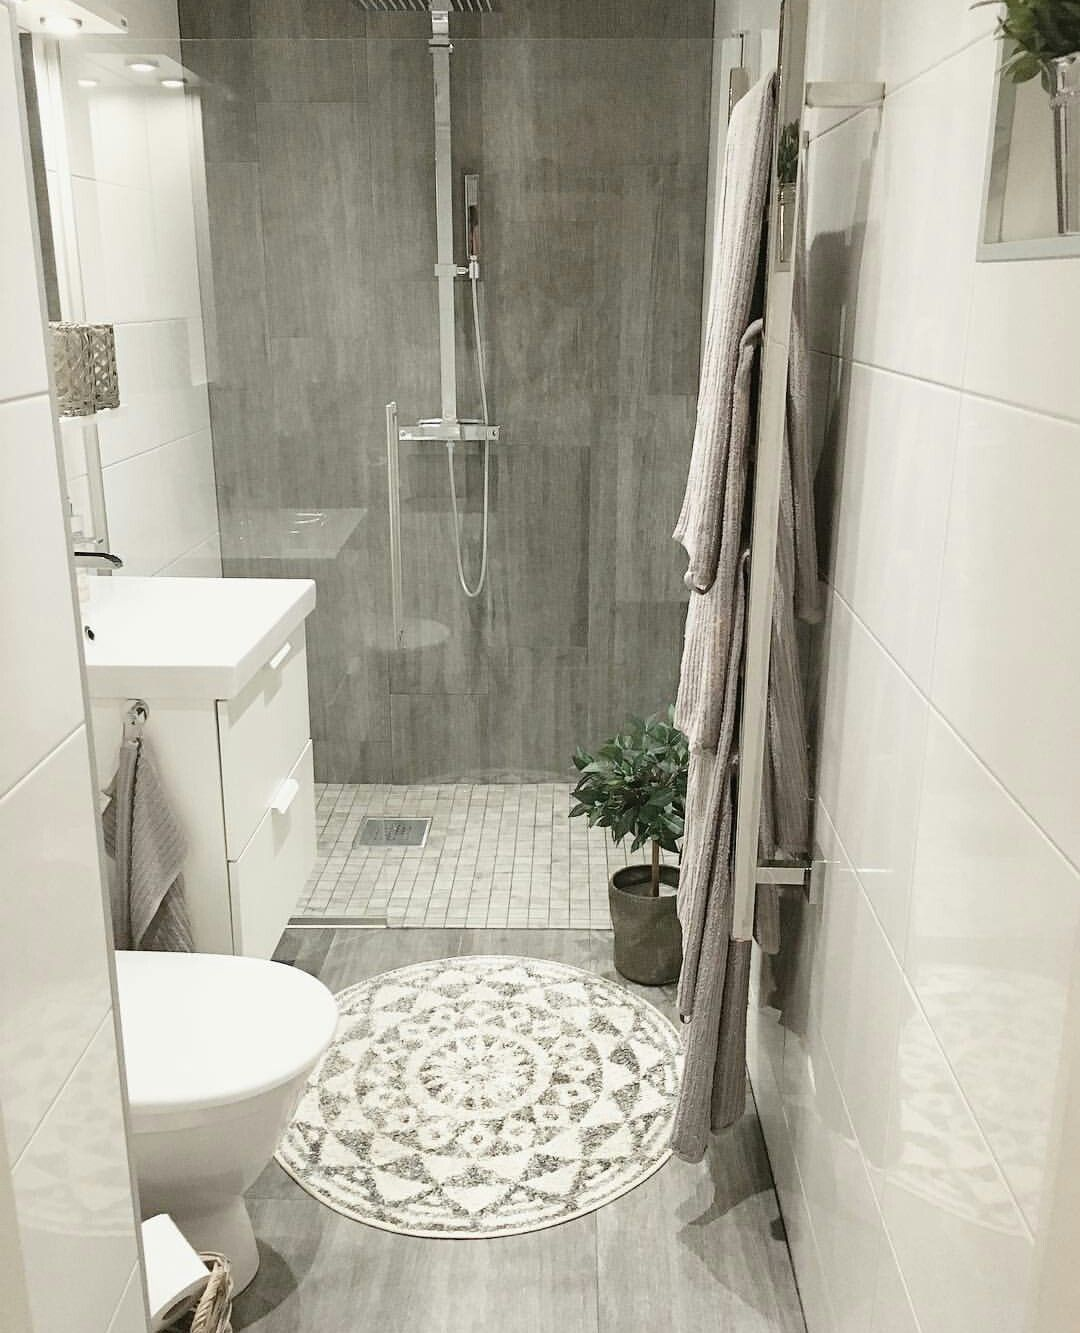 Bathroom Small Ideas Designmybathroom Basement Bathroom Simple Bathroom Decor Small Bathroom Remodel